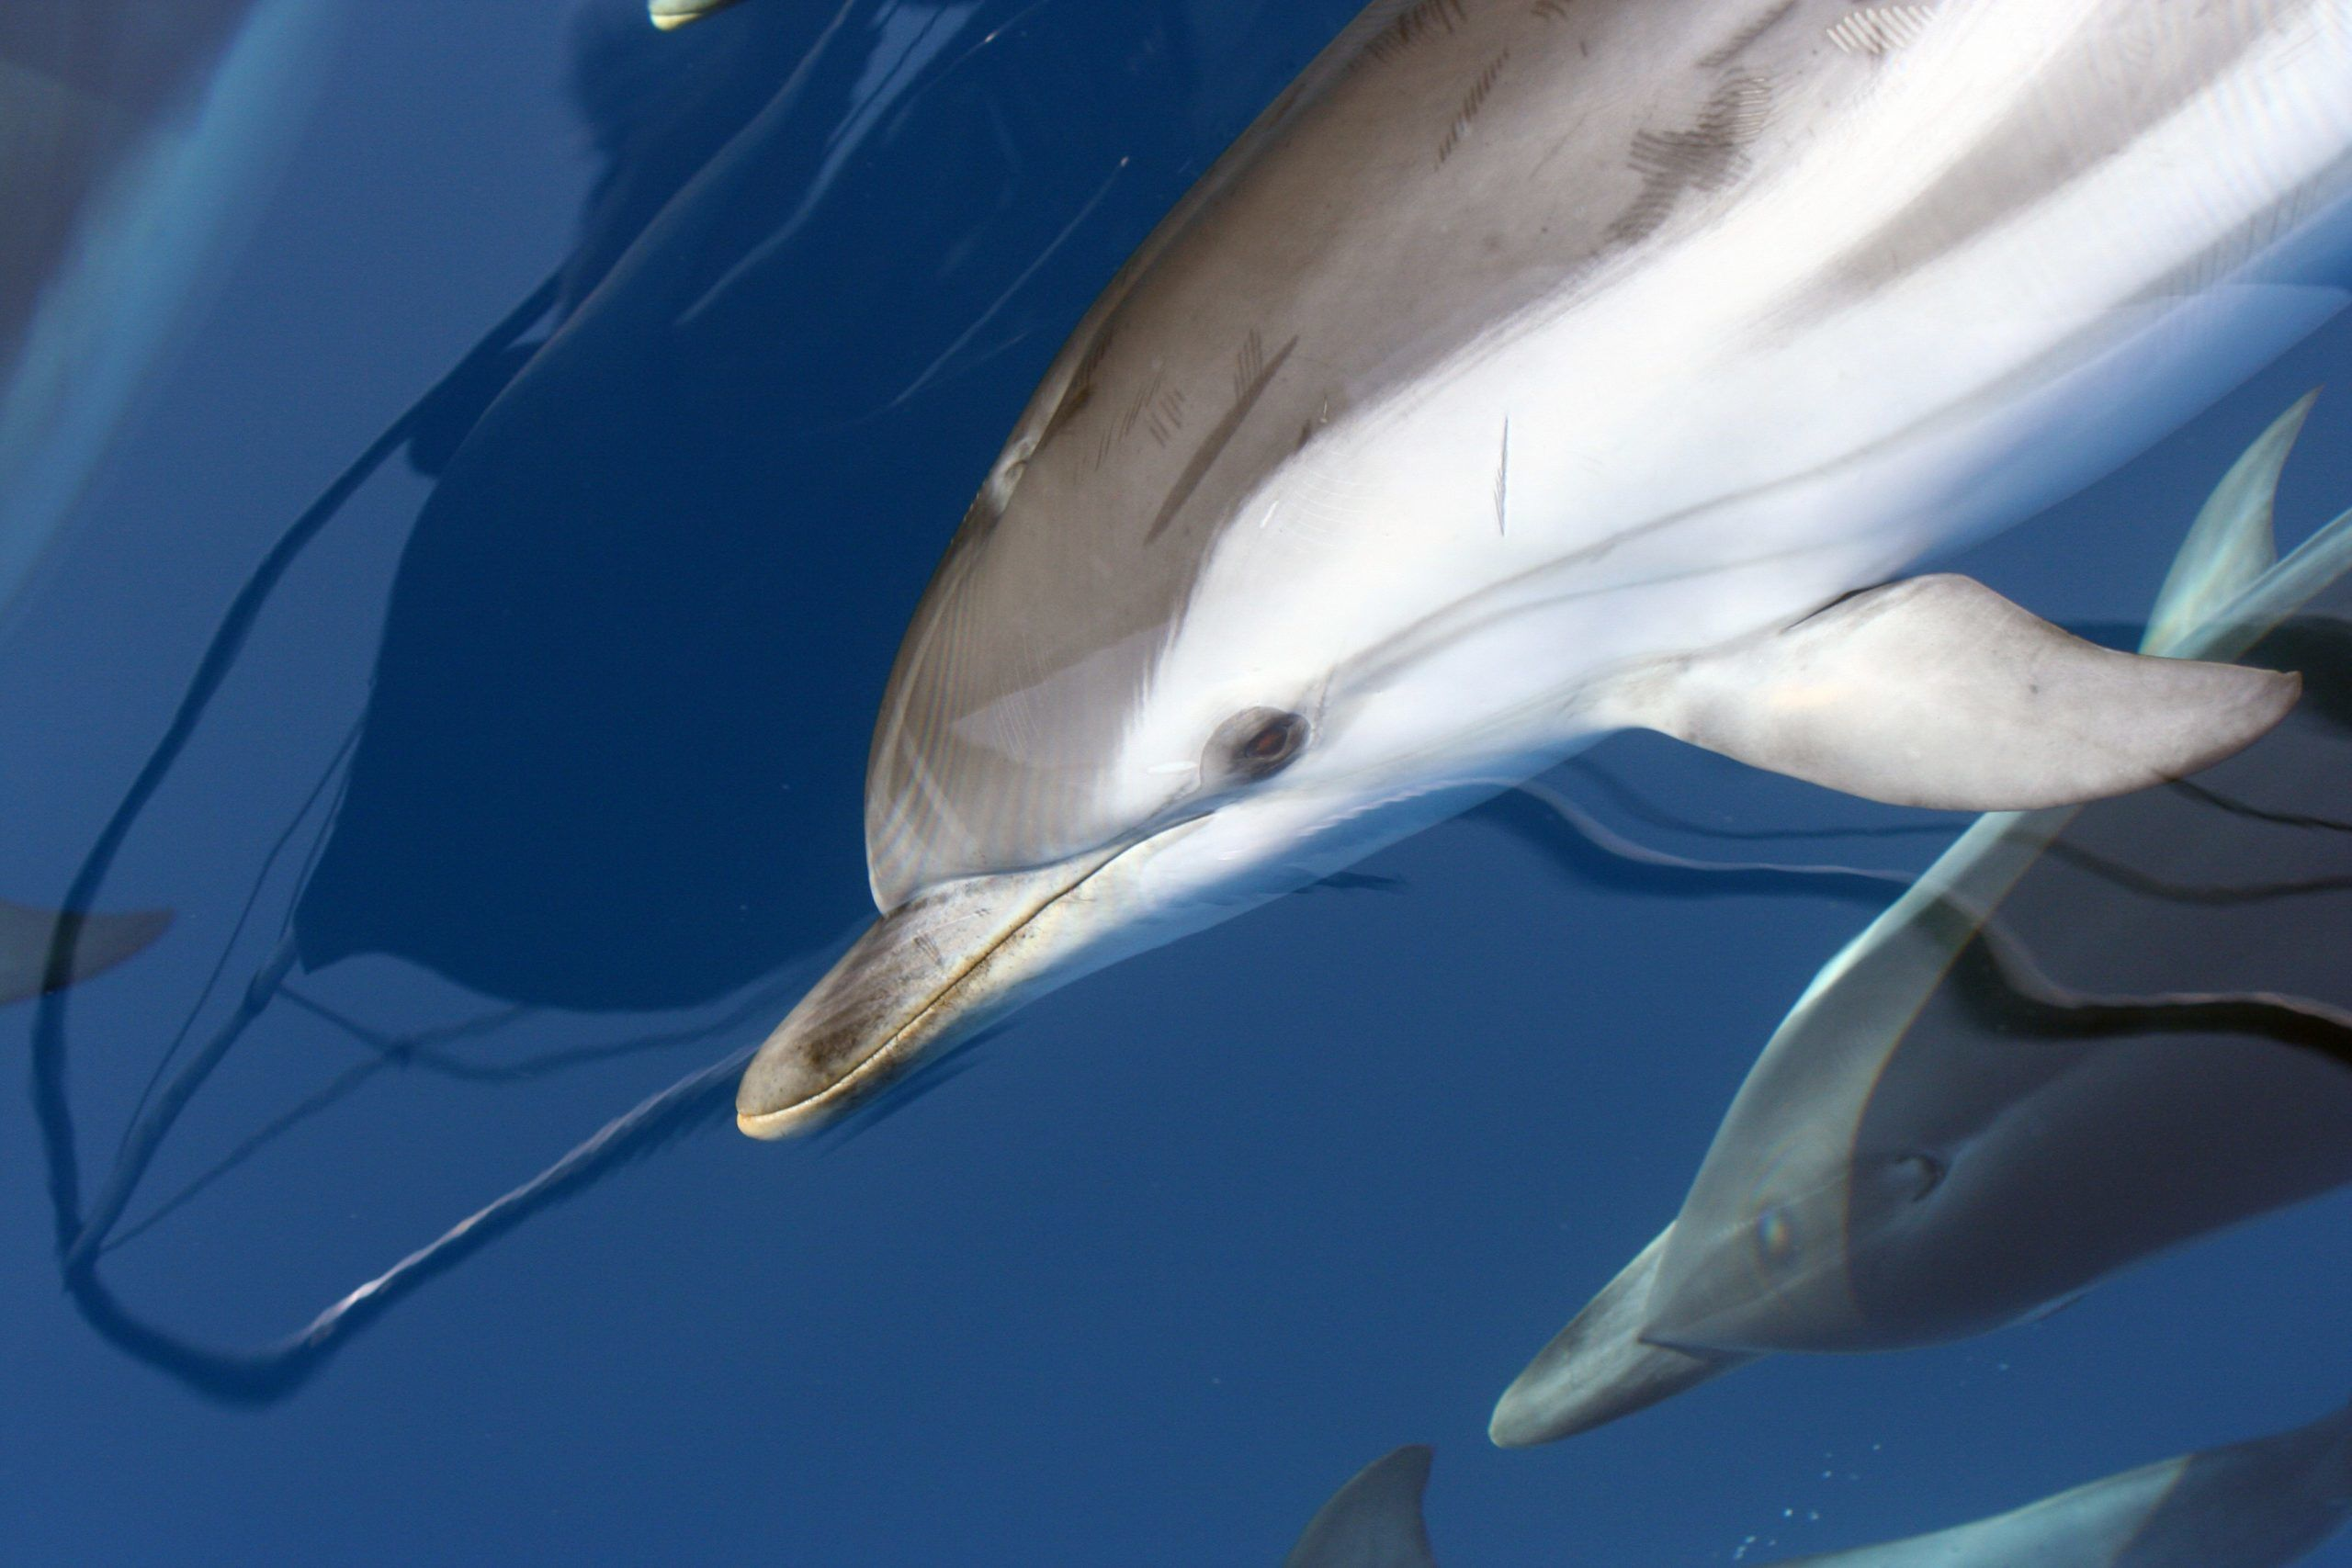 Striped dolphin swimming under the boat